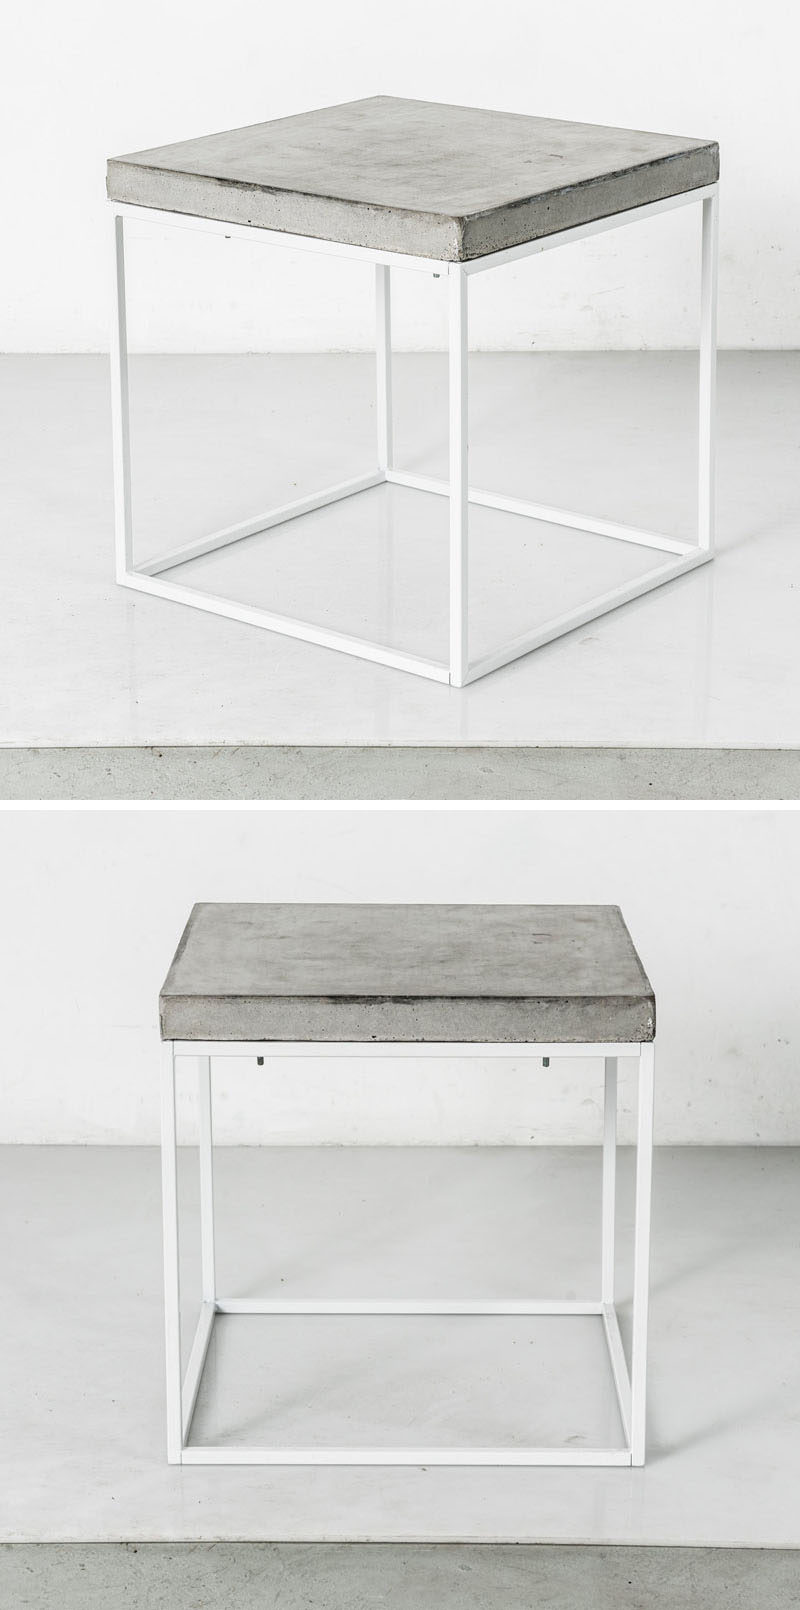 10 Examples Of Concrete and Steel Tables To Add To Your Industrial Interior // This table with a simple steel frame and a concrete top could easily help to industrialize a space.